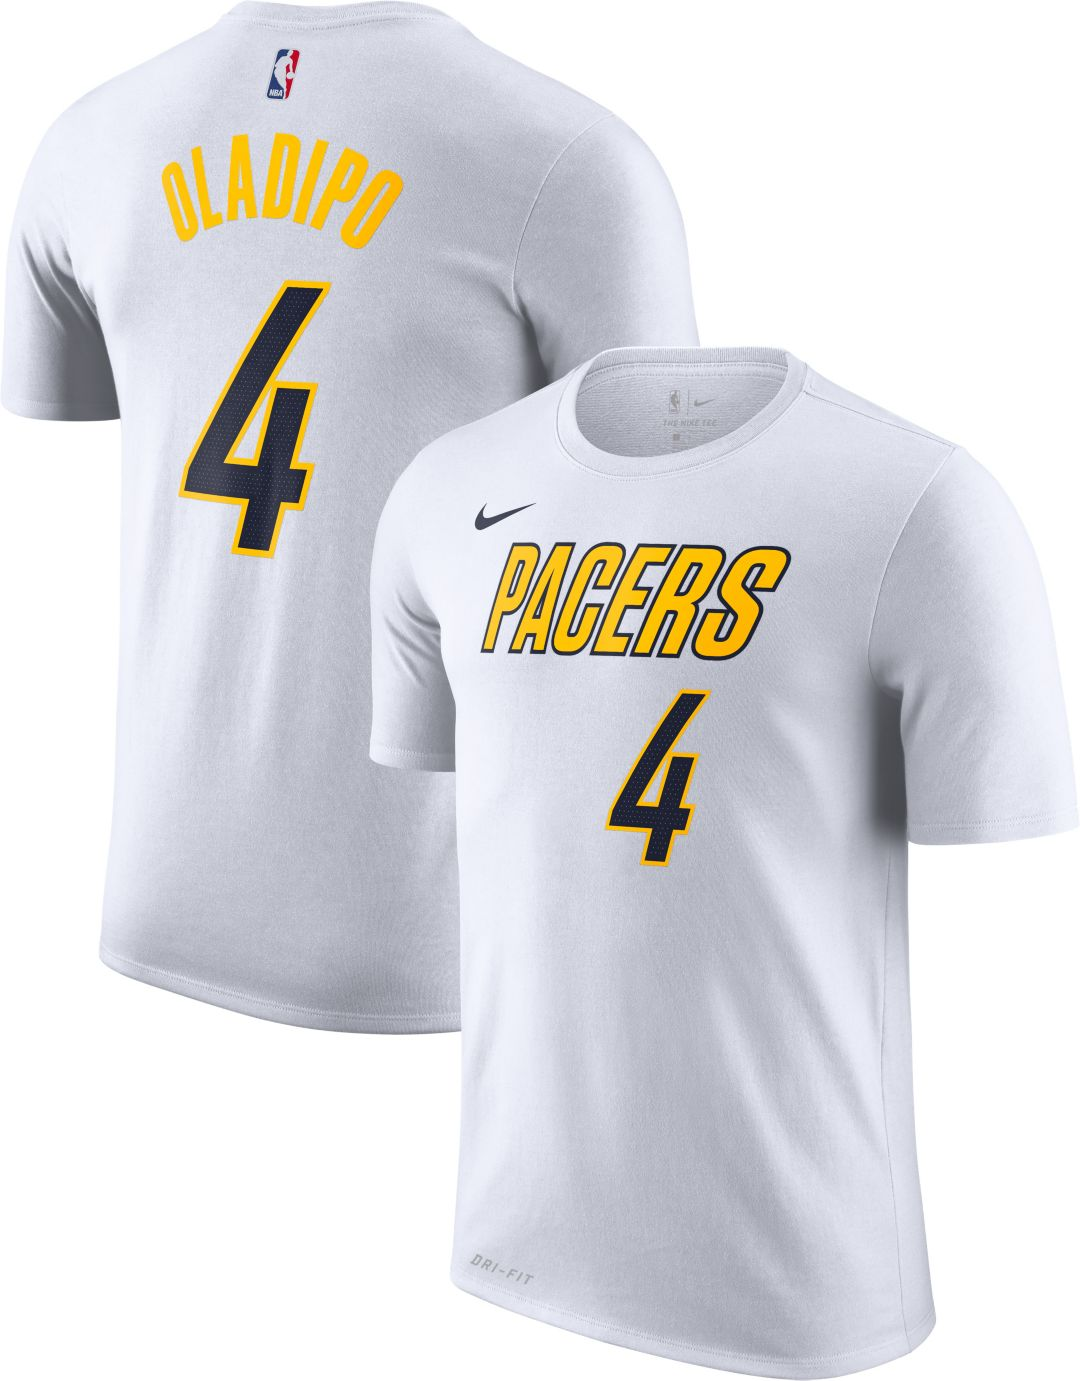 the best attitude 6ea21 04f43 Nike Men's Indiana Pacers Victor Oladipo Dri-FIT Earned Edition T-Shirt